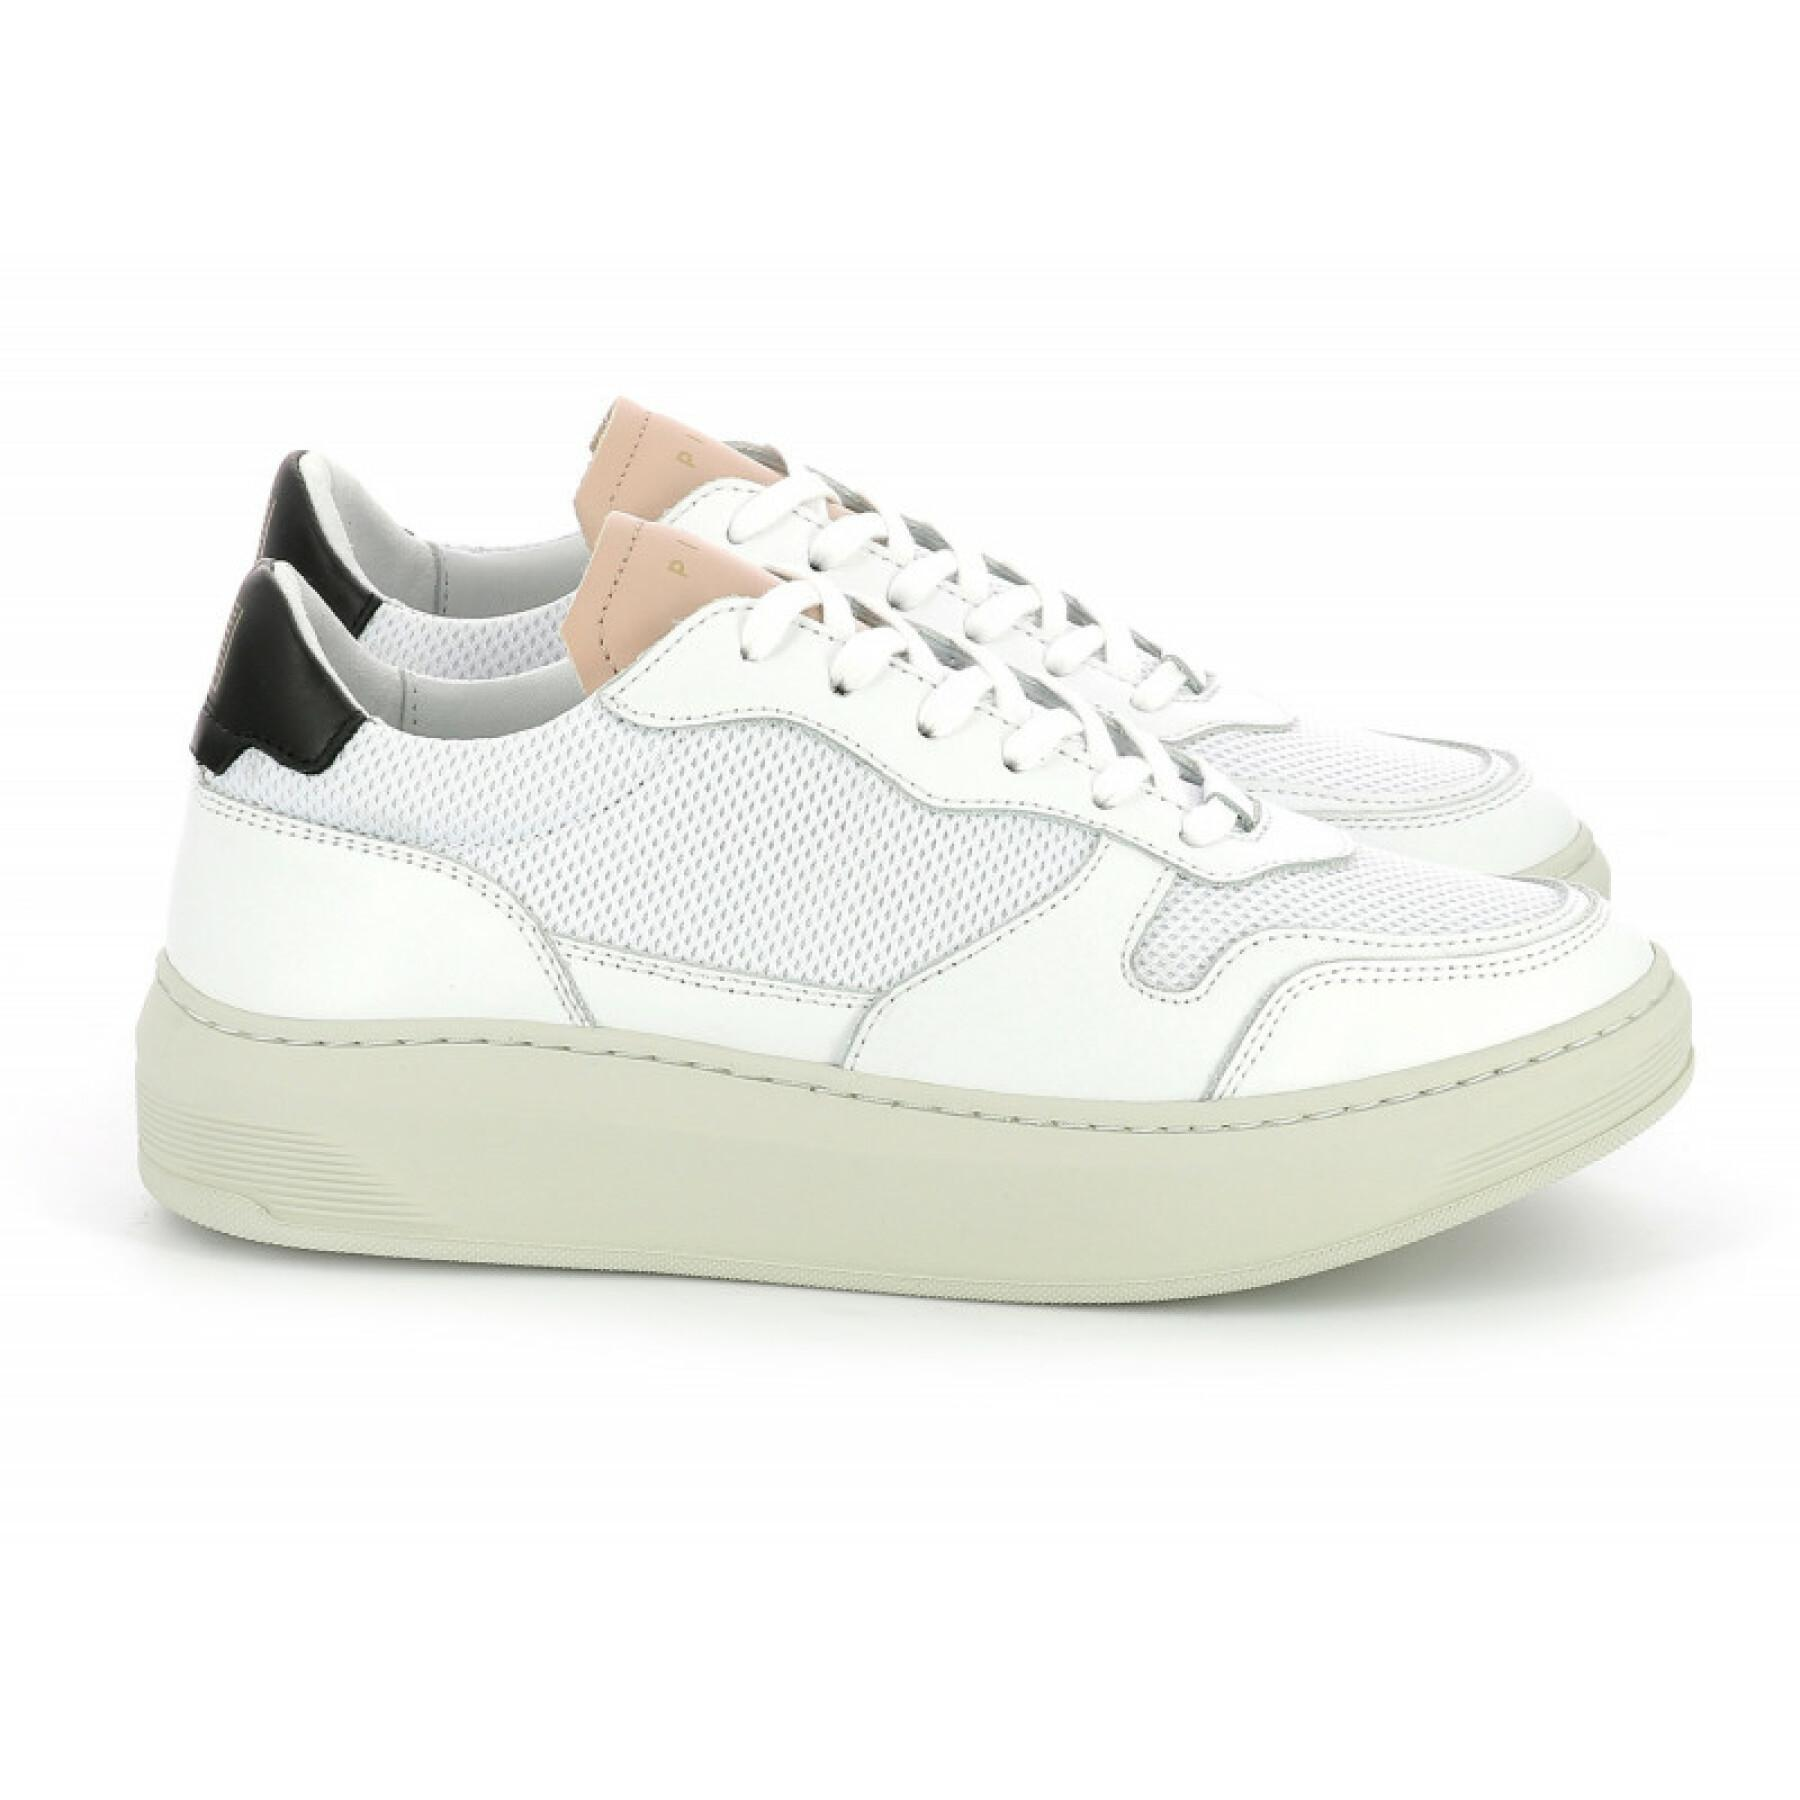 Chaussures Femme Piola Cayma